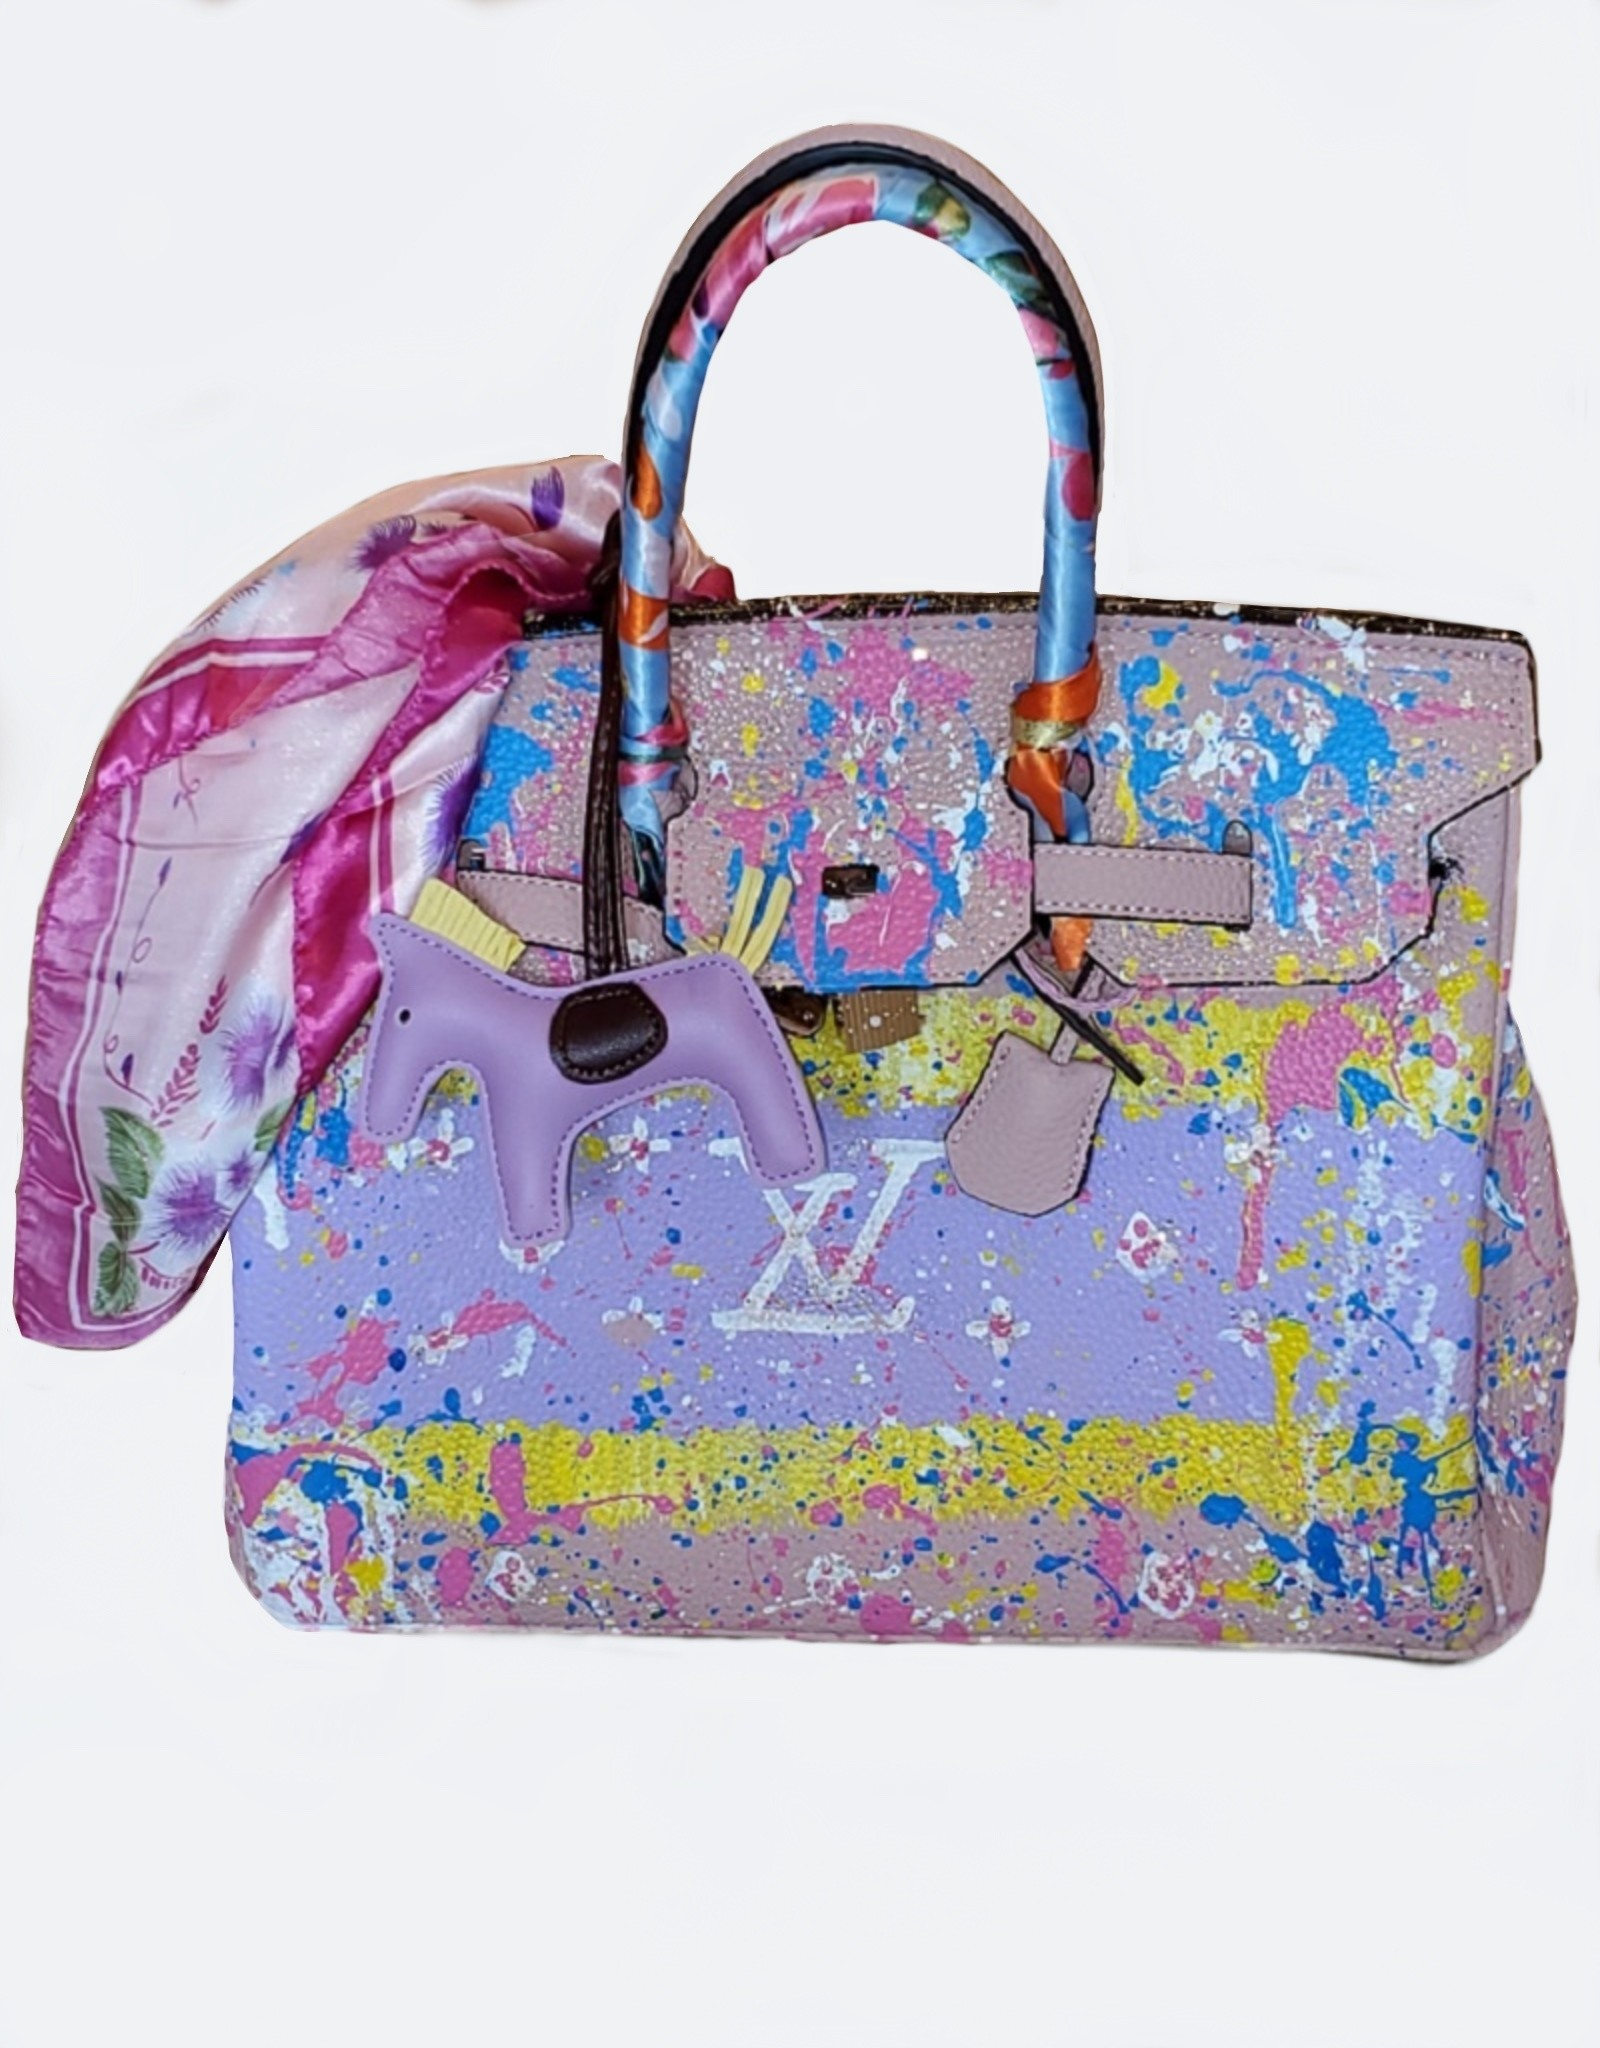 Anca Barbu Pop Art Hand Painted LV & Splatter Blush Leather Handbag